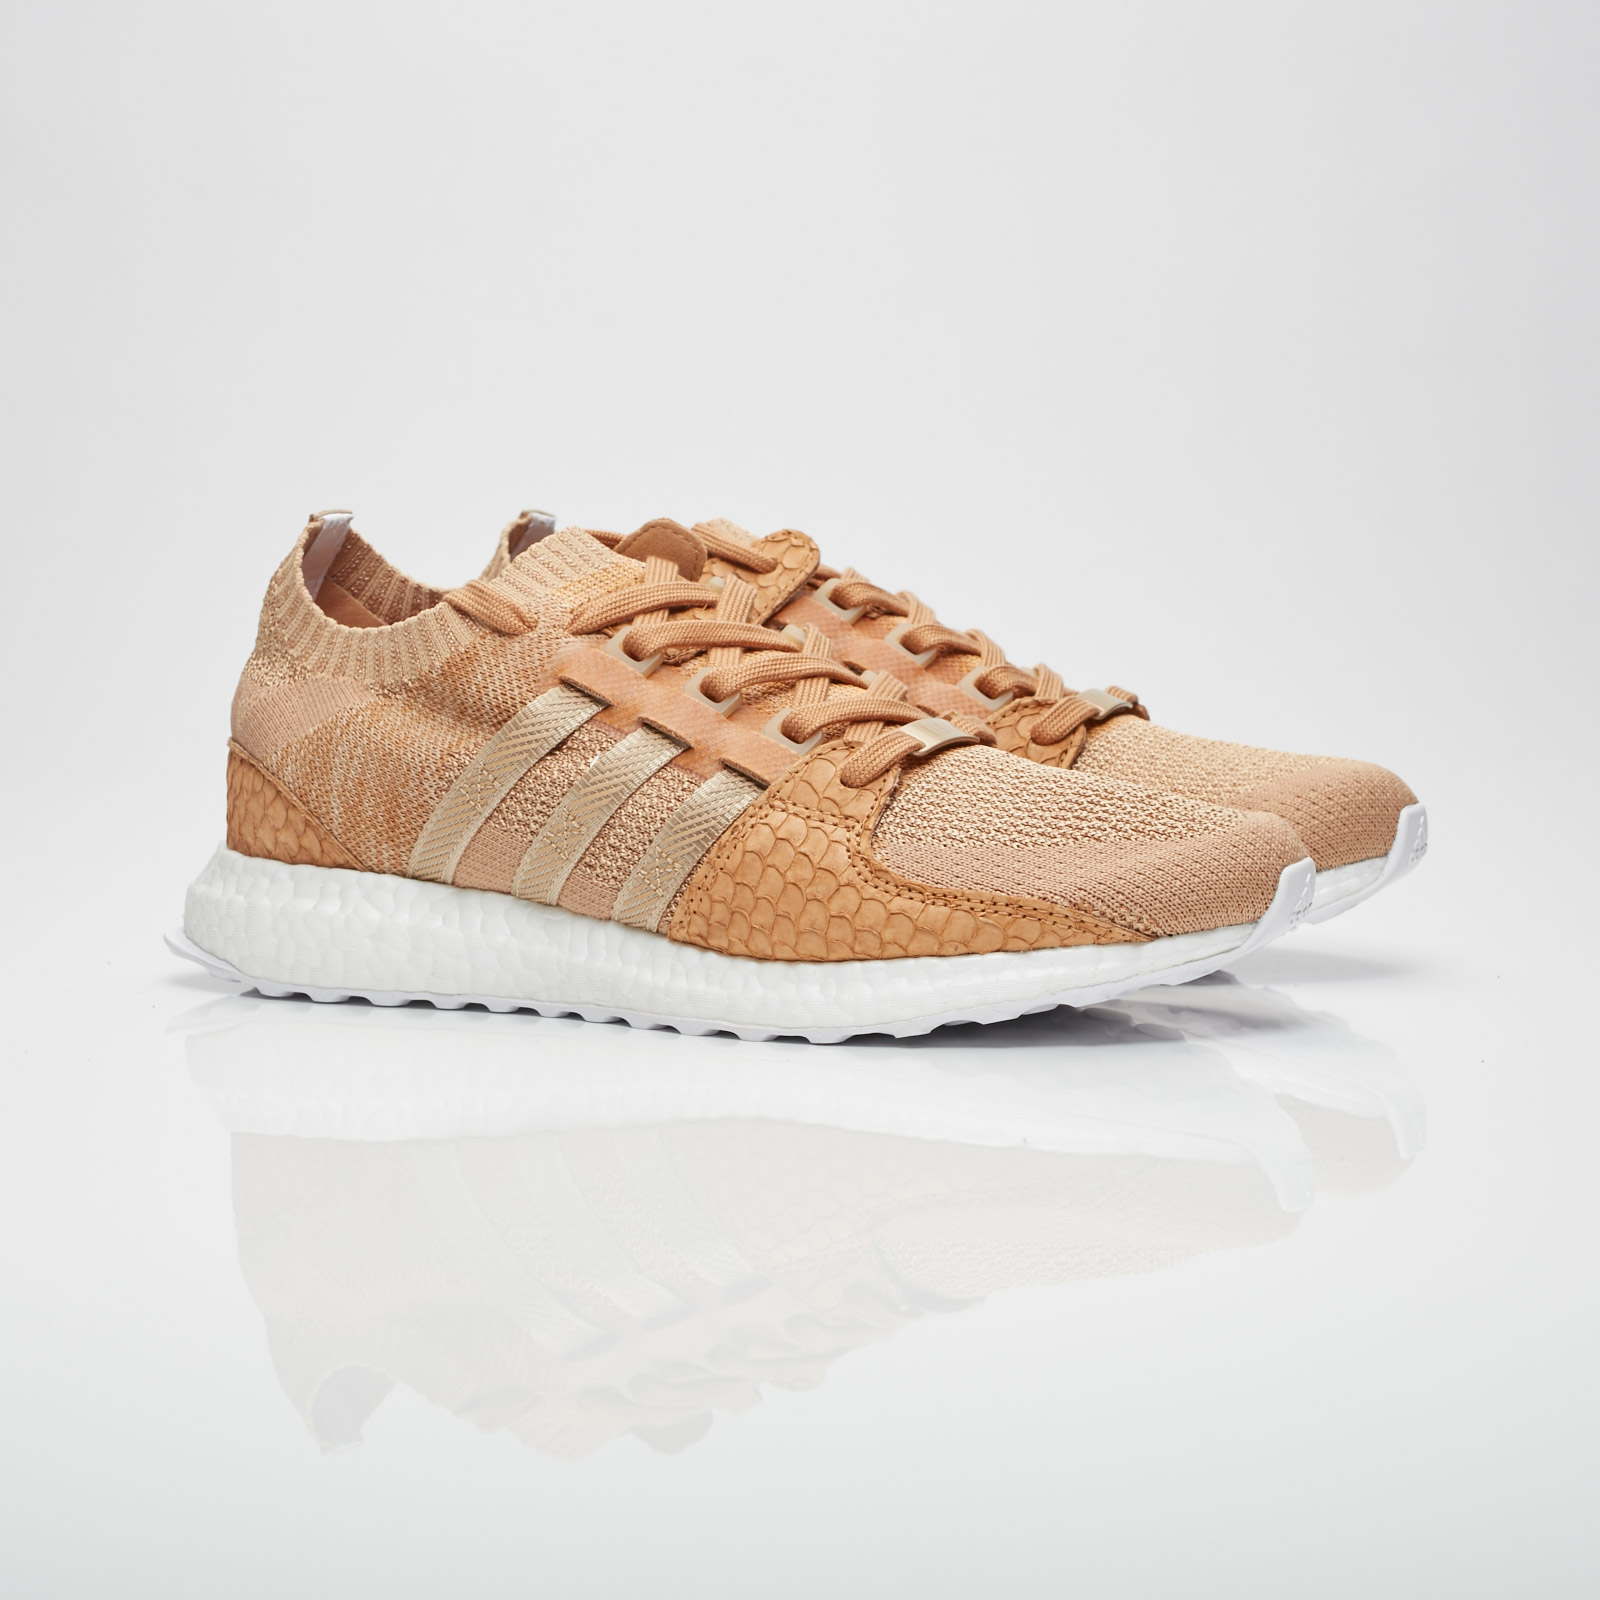 size 40 87d7b 084c8 adidas Originals EQT Support Ultra PK x Pusha T